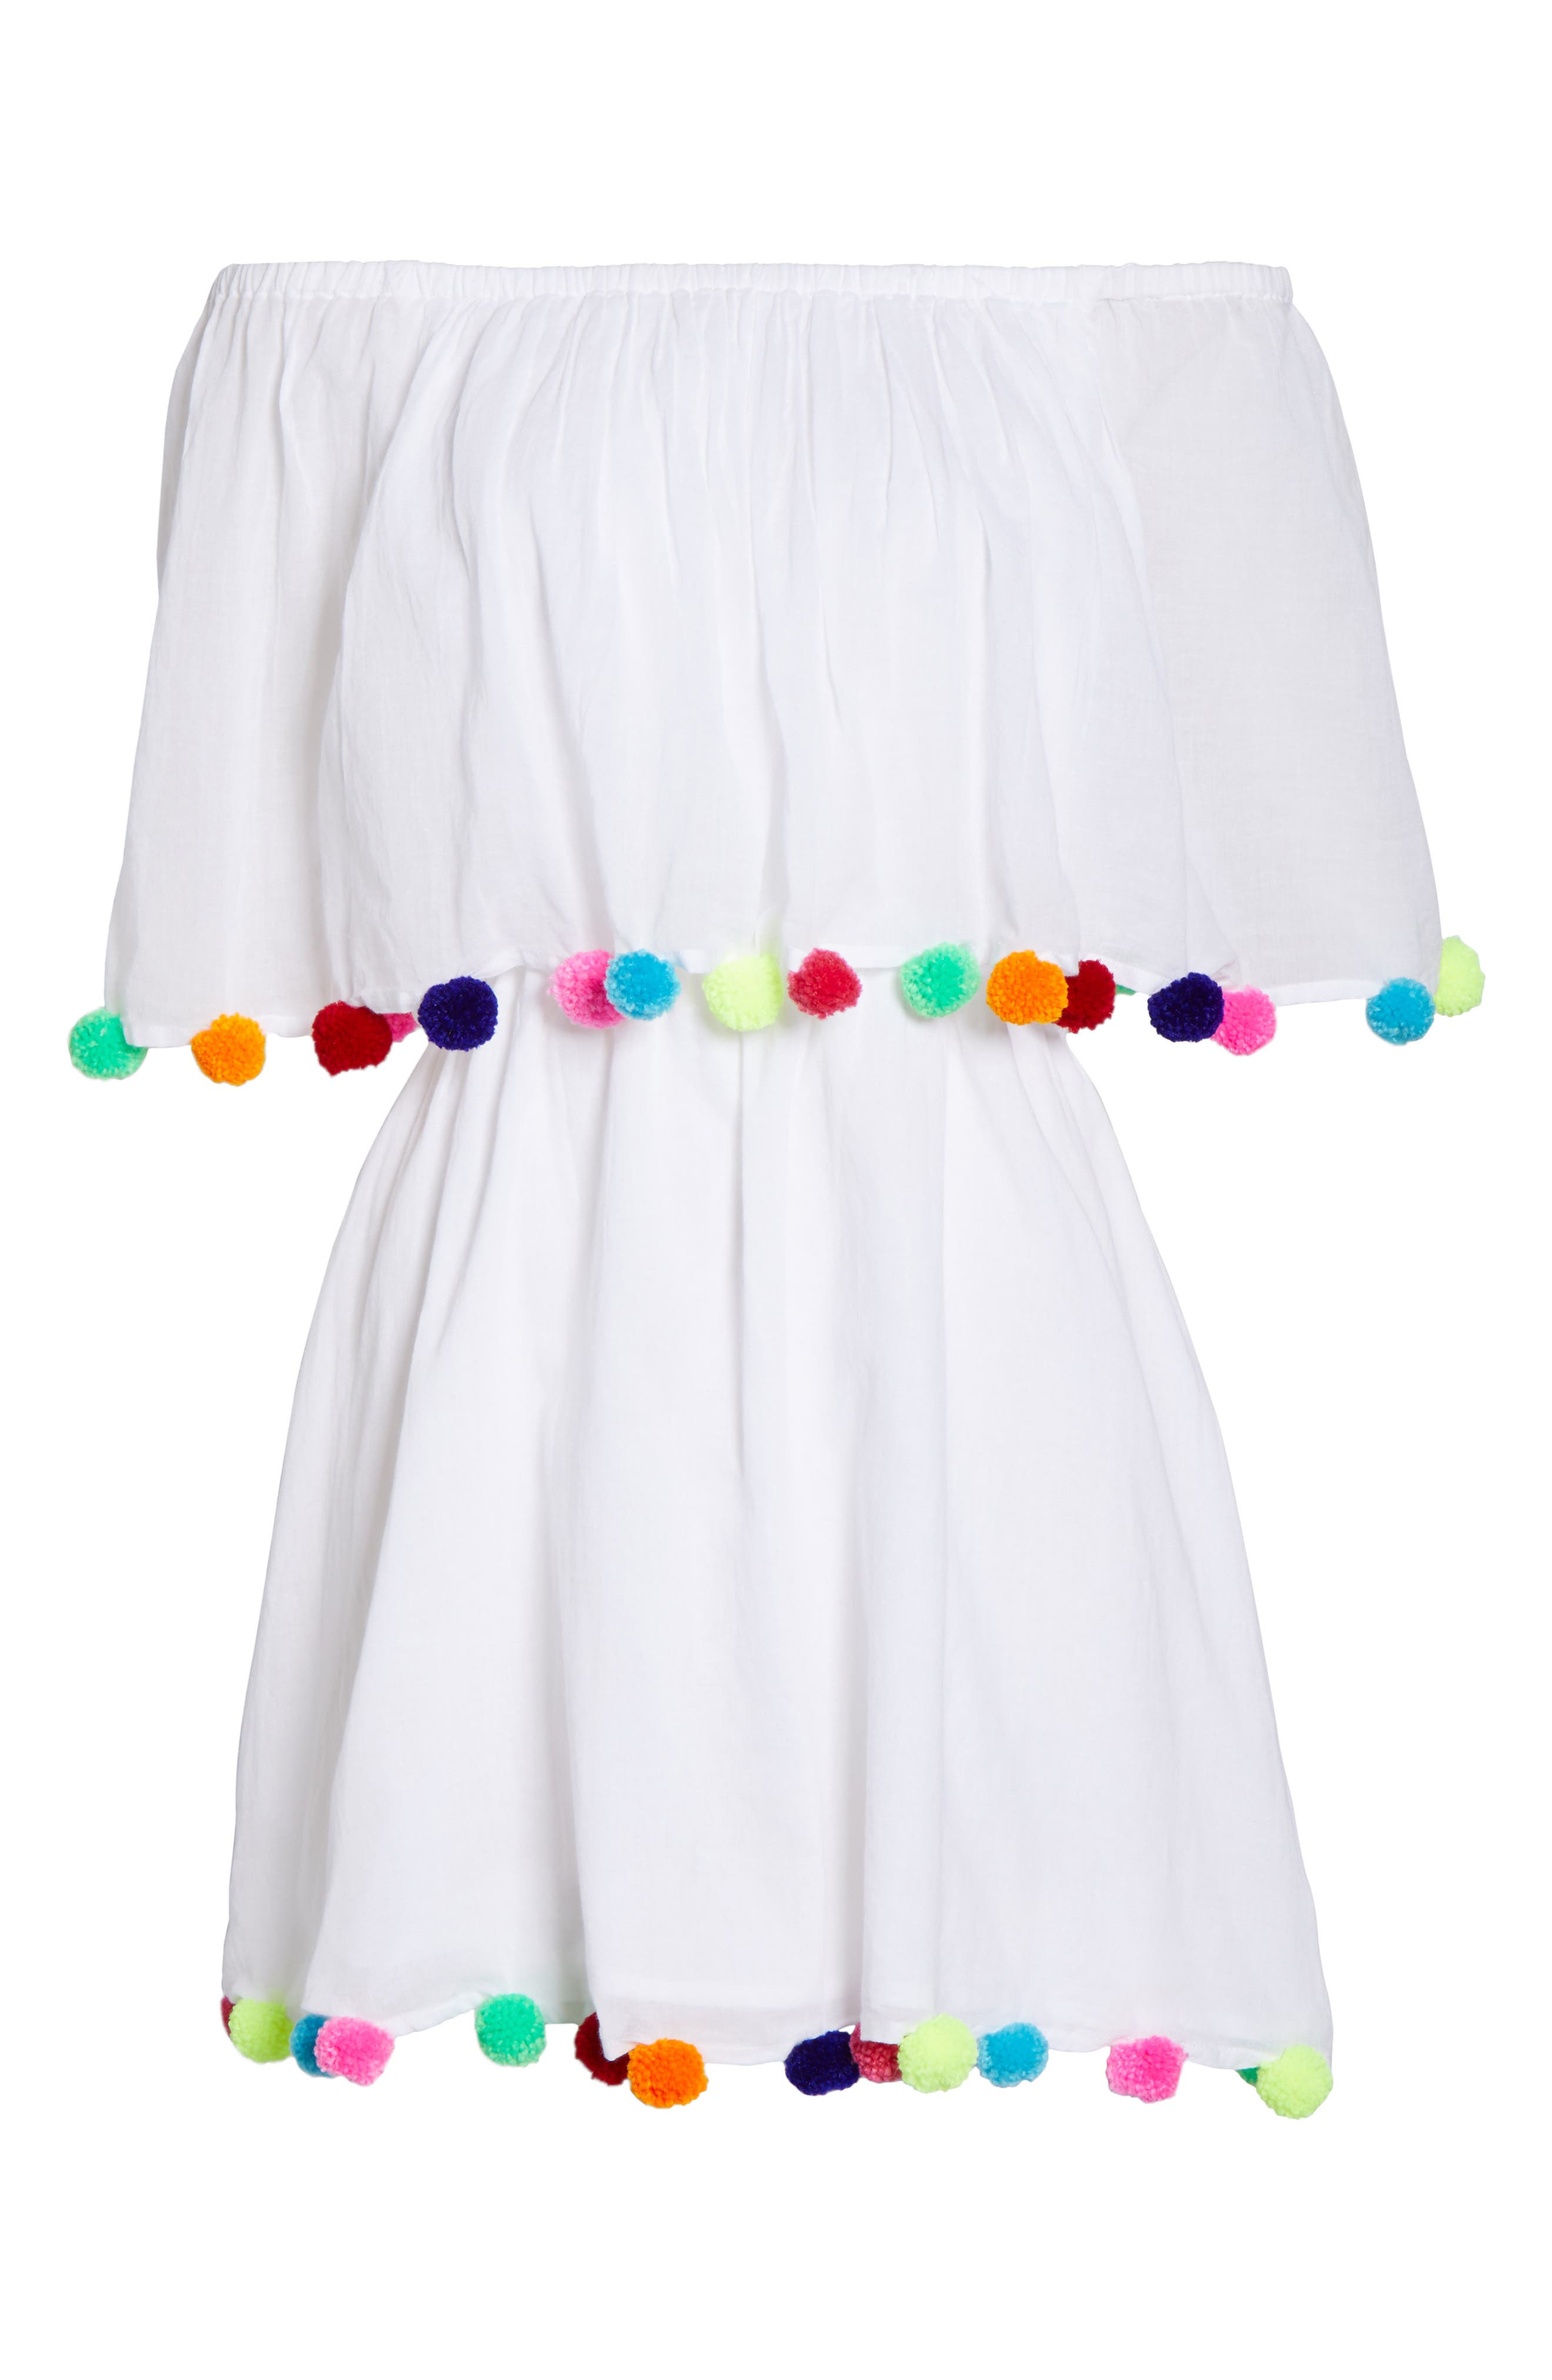 Pompom Festival Cover-Up Dress,                             Alternate thumbnail 6, color,                             White